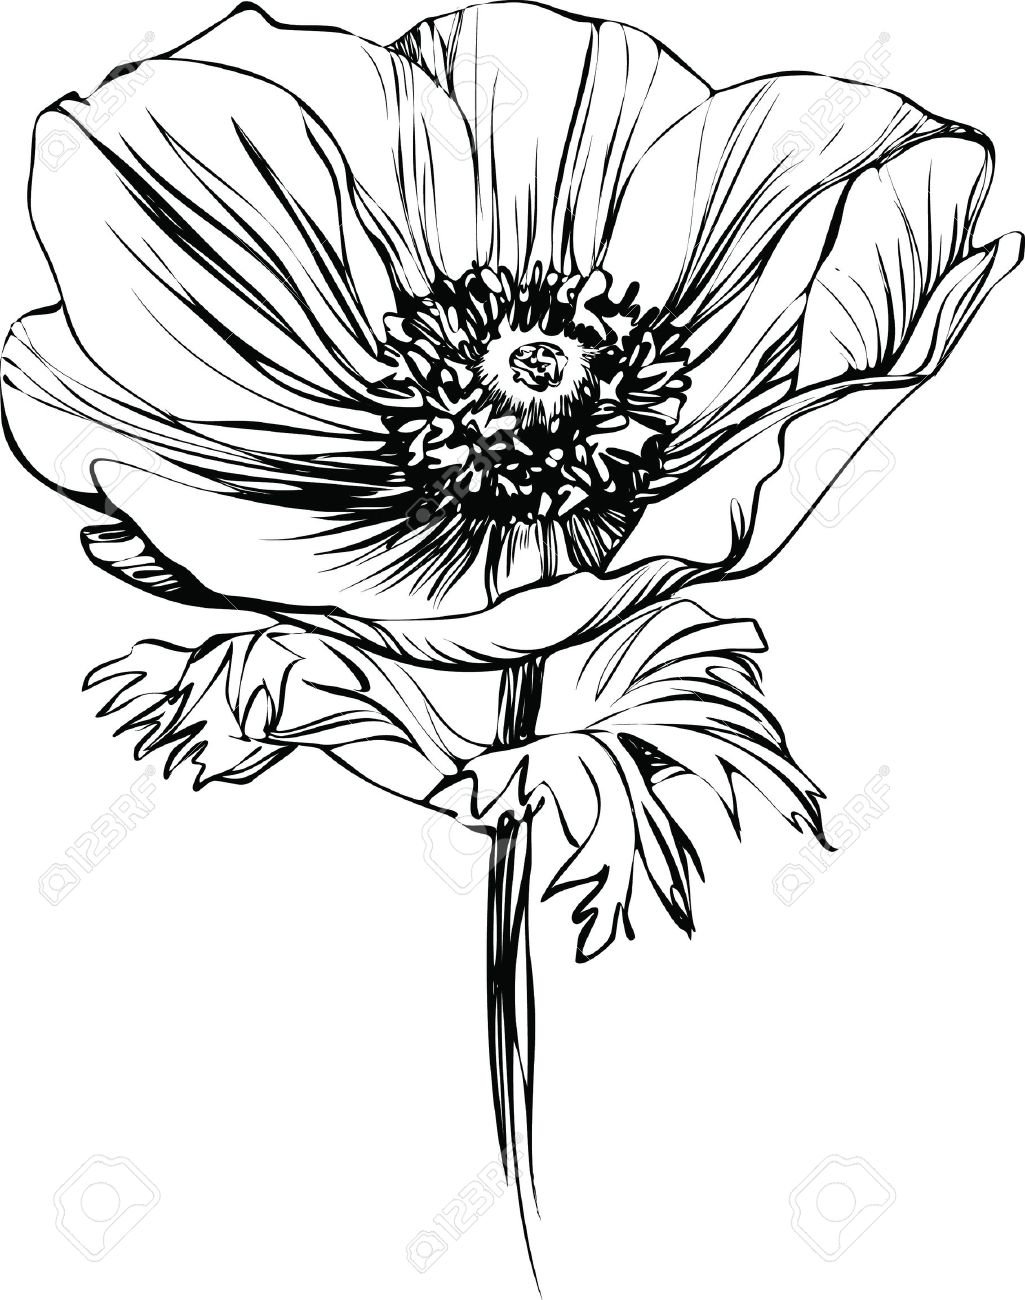 Black And White Picture Poppy Flower On The Stalk Royalty Free